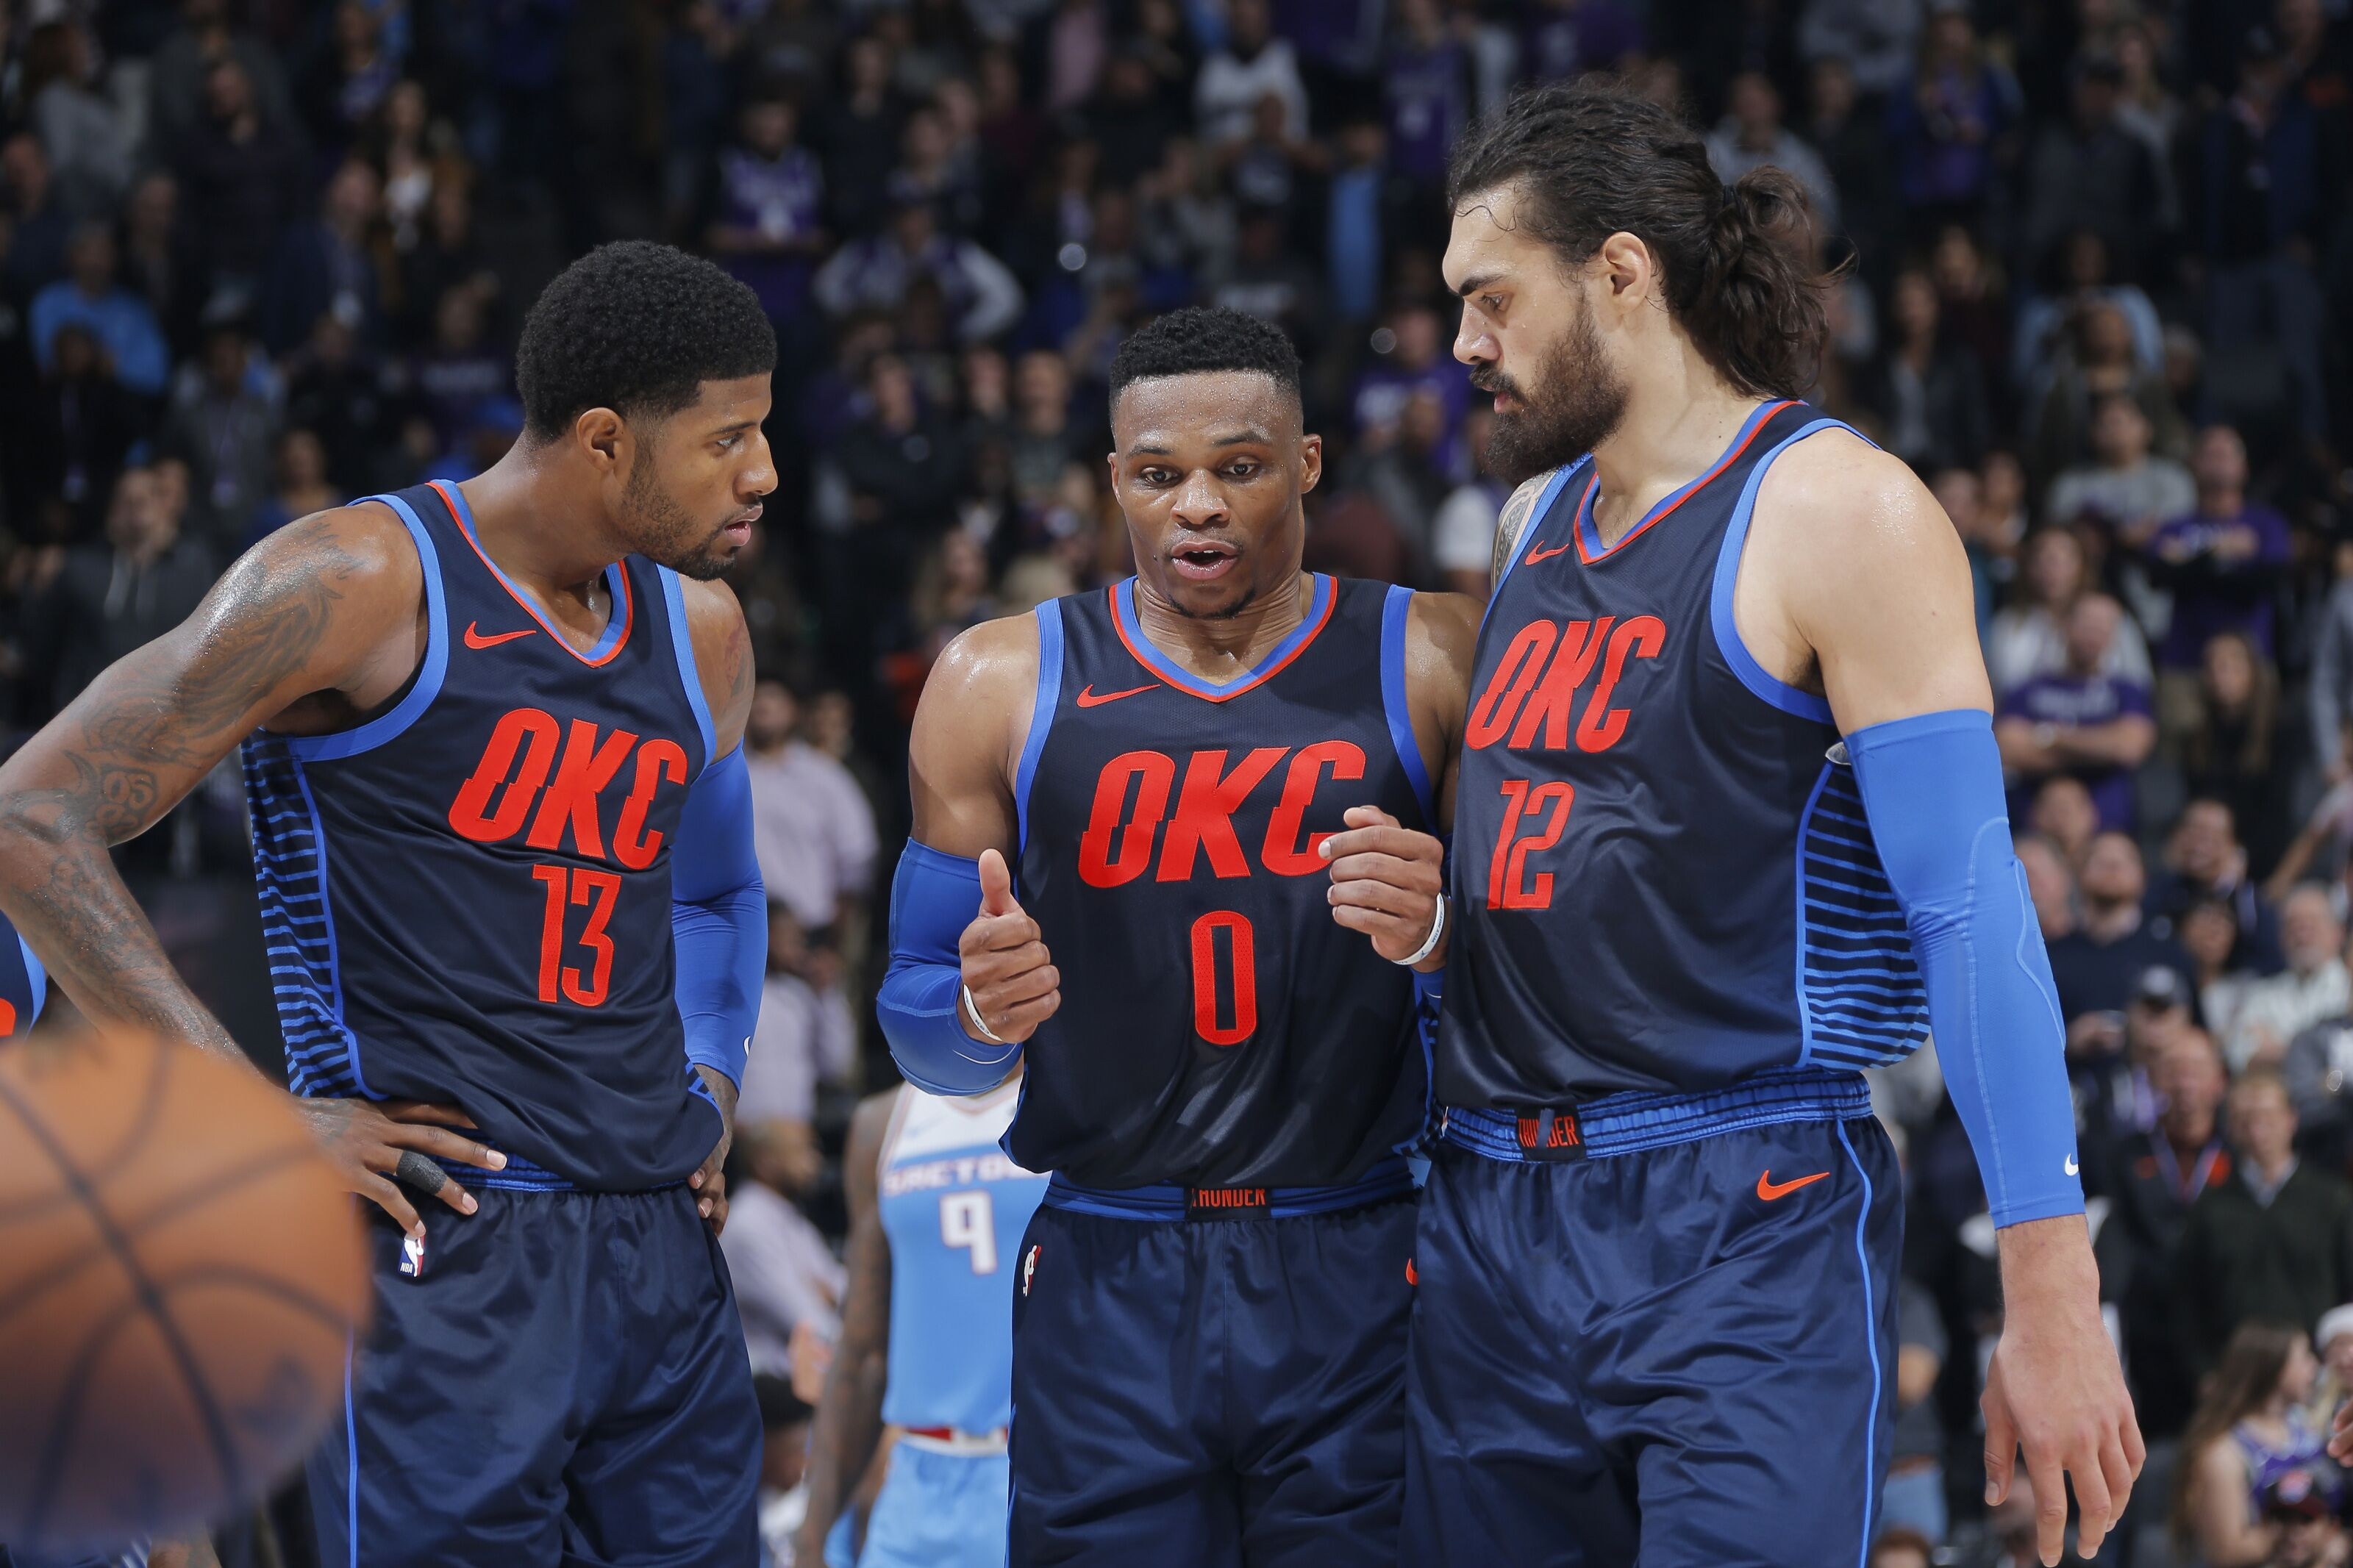 5b90599992e Four more days to vote OKC Thunder trio into All-Star Game